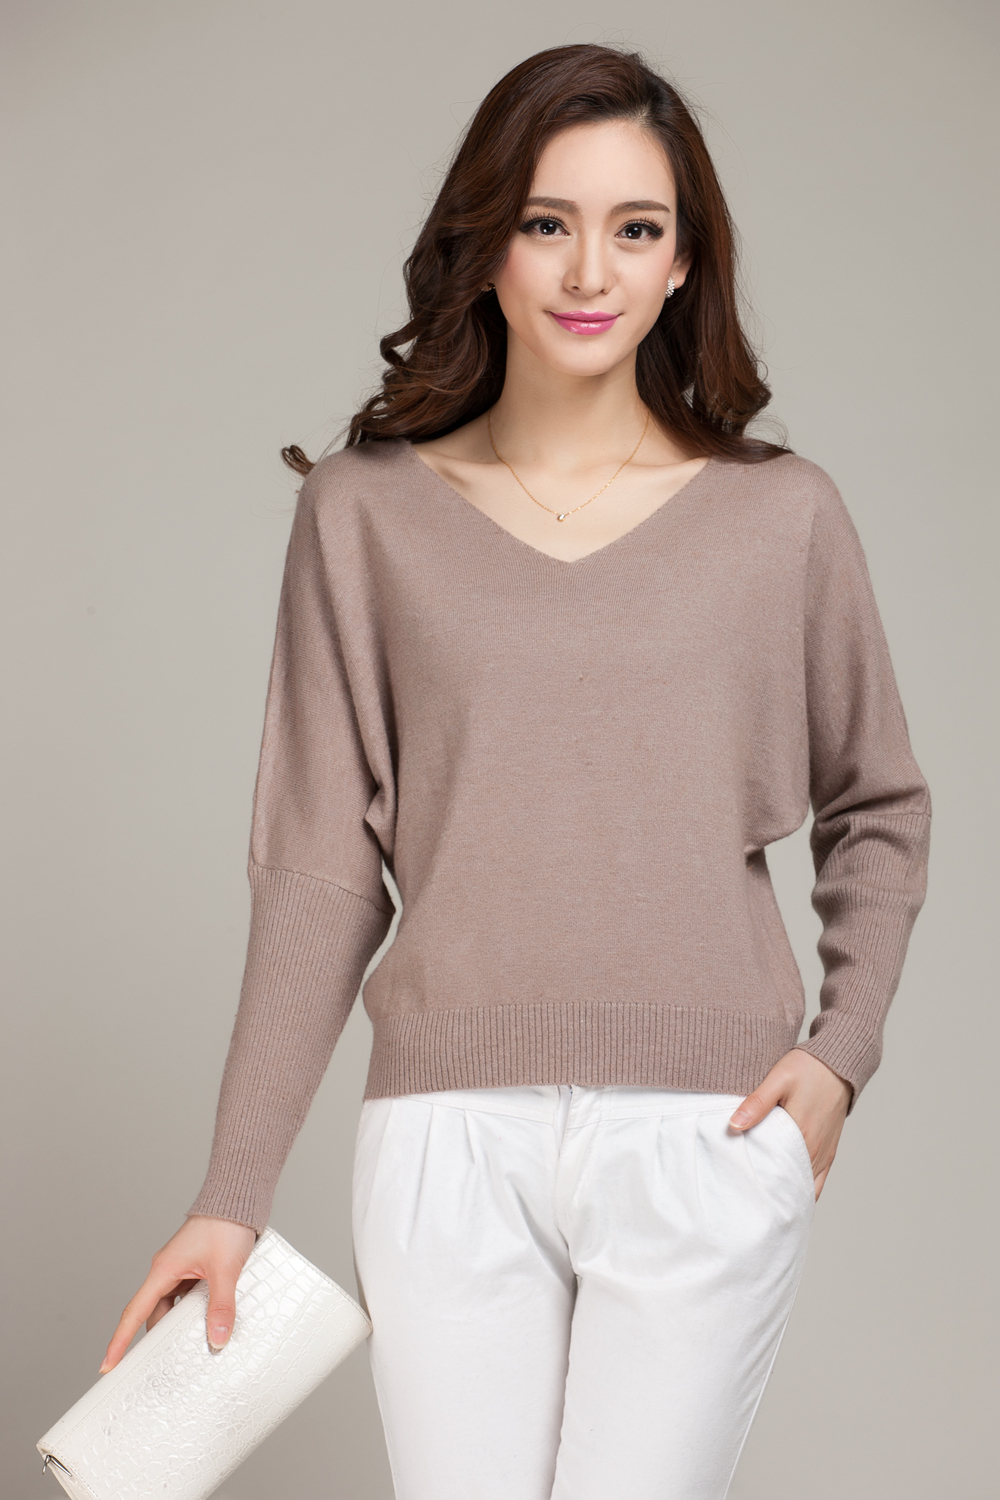 Buy cashmere sweaters